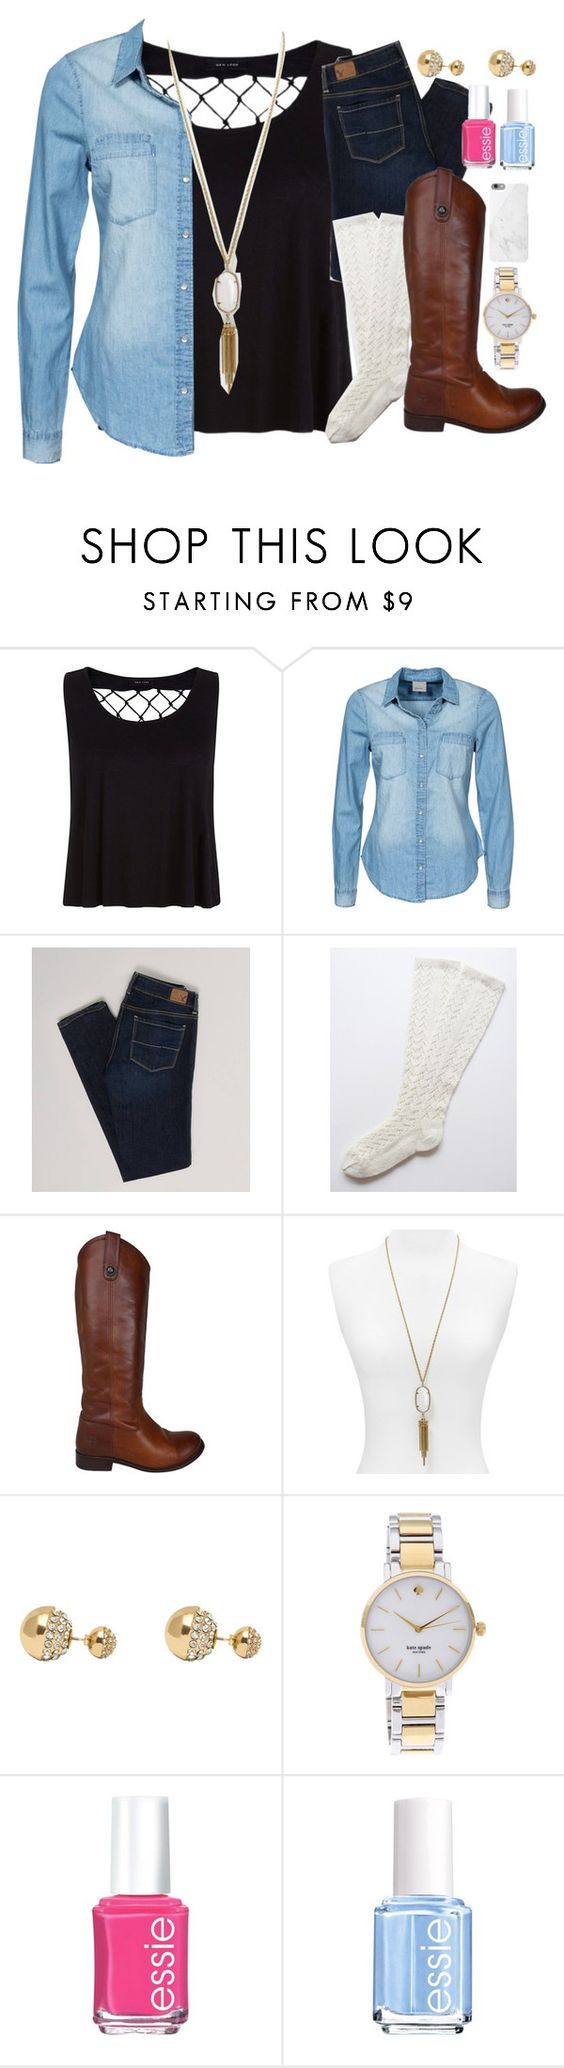 """""""The always perfect Minda"""" by classically-kendall ❤ liked on Polyvore featuring Vero Moda, American Eagle Outfitters, Frye, Kendra Scott, Adele Marie, Kate Spade, Essie and Native Union"""